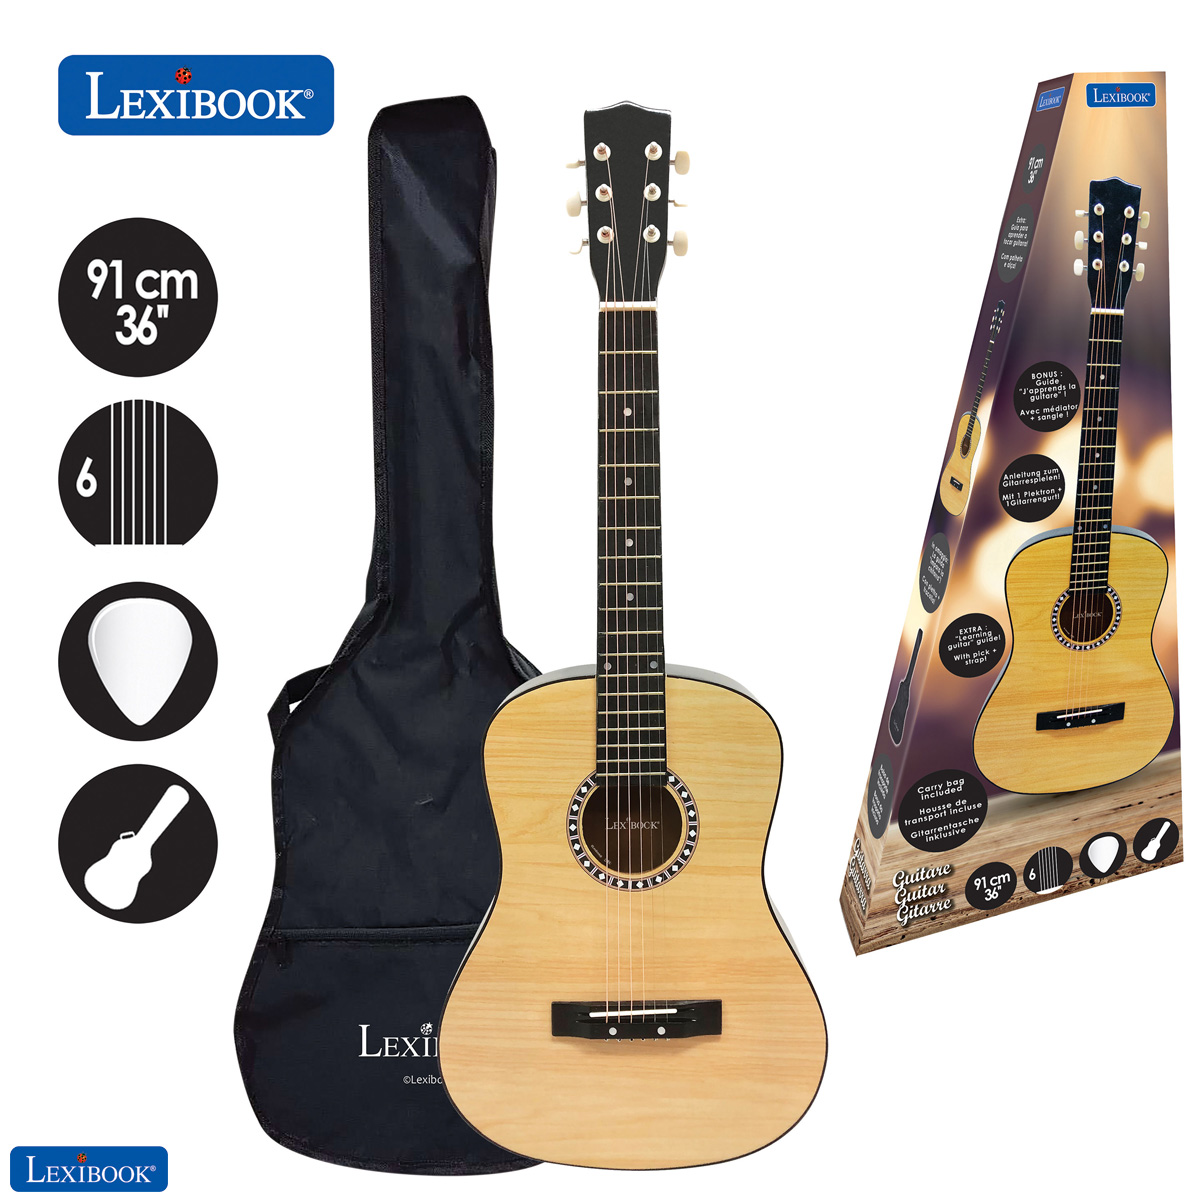 Lexibook - Wooden Acoustic Guitar - 36'' with carry bag (K2200)